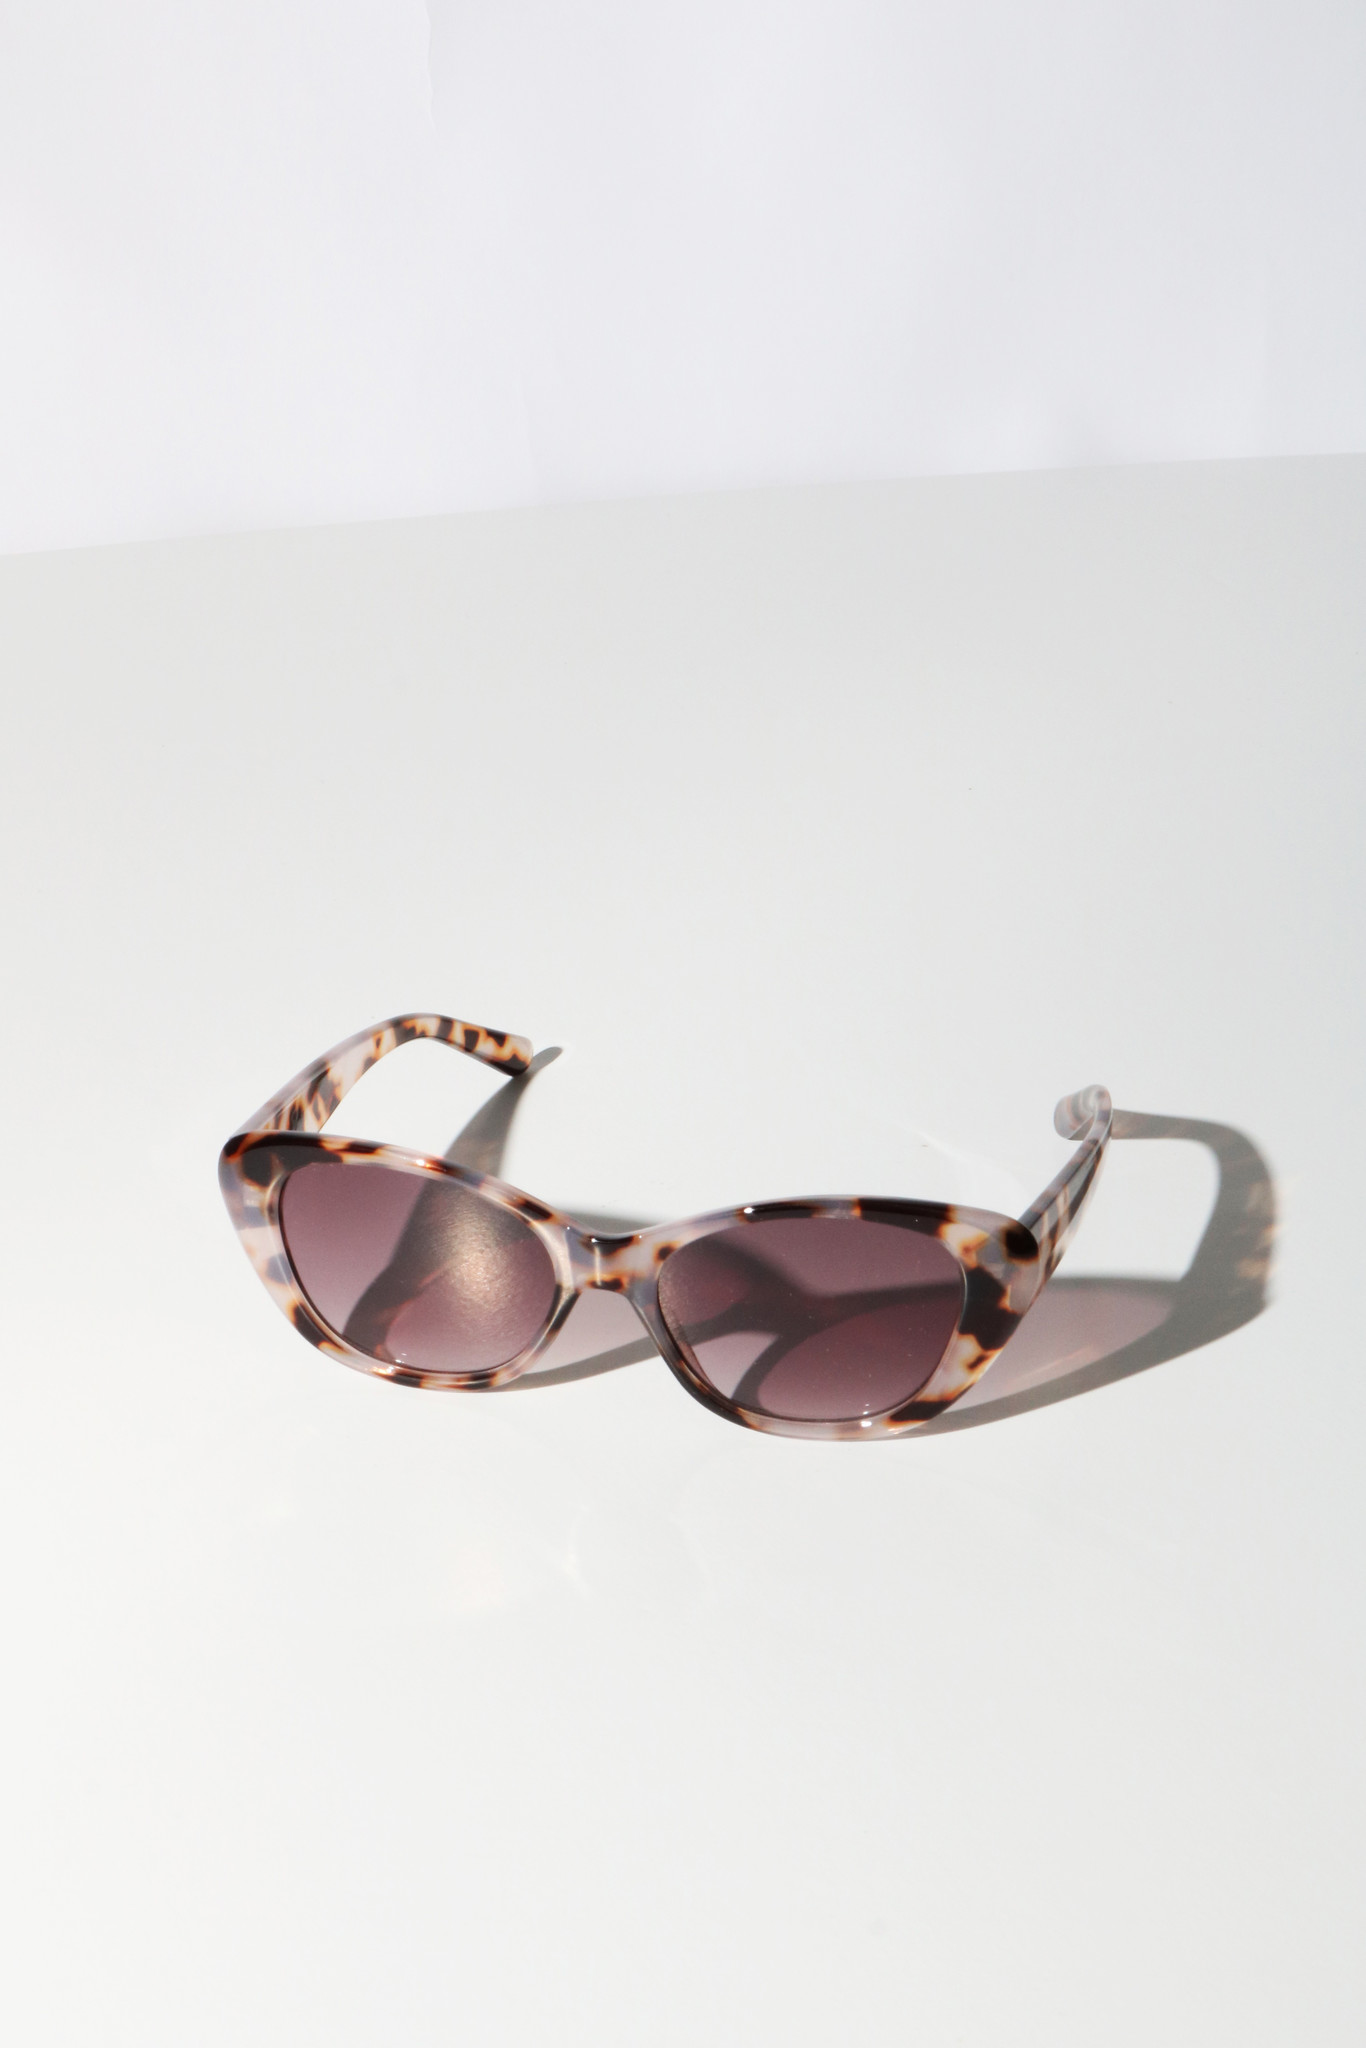 Reality Sloane Ranger Sunglasses in Blossom